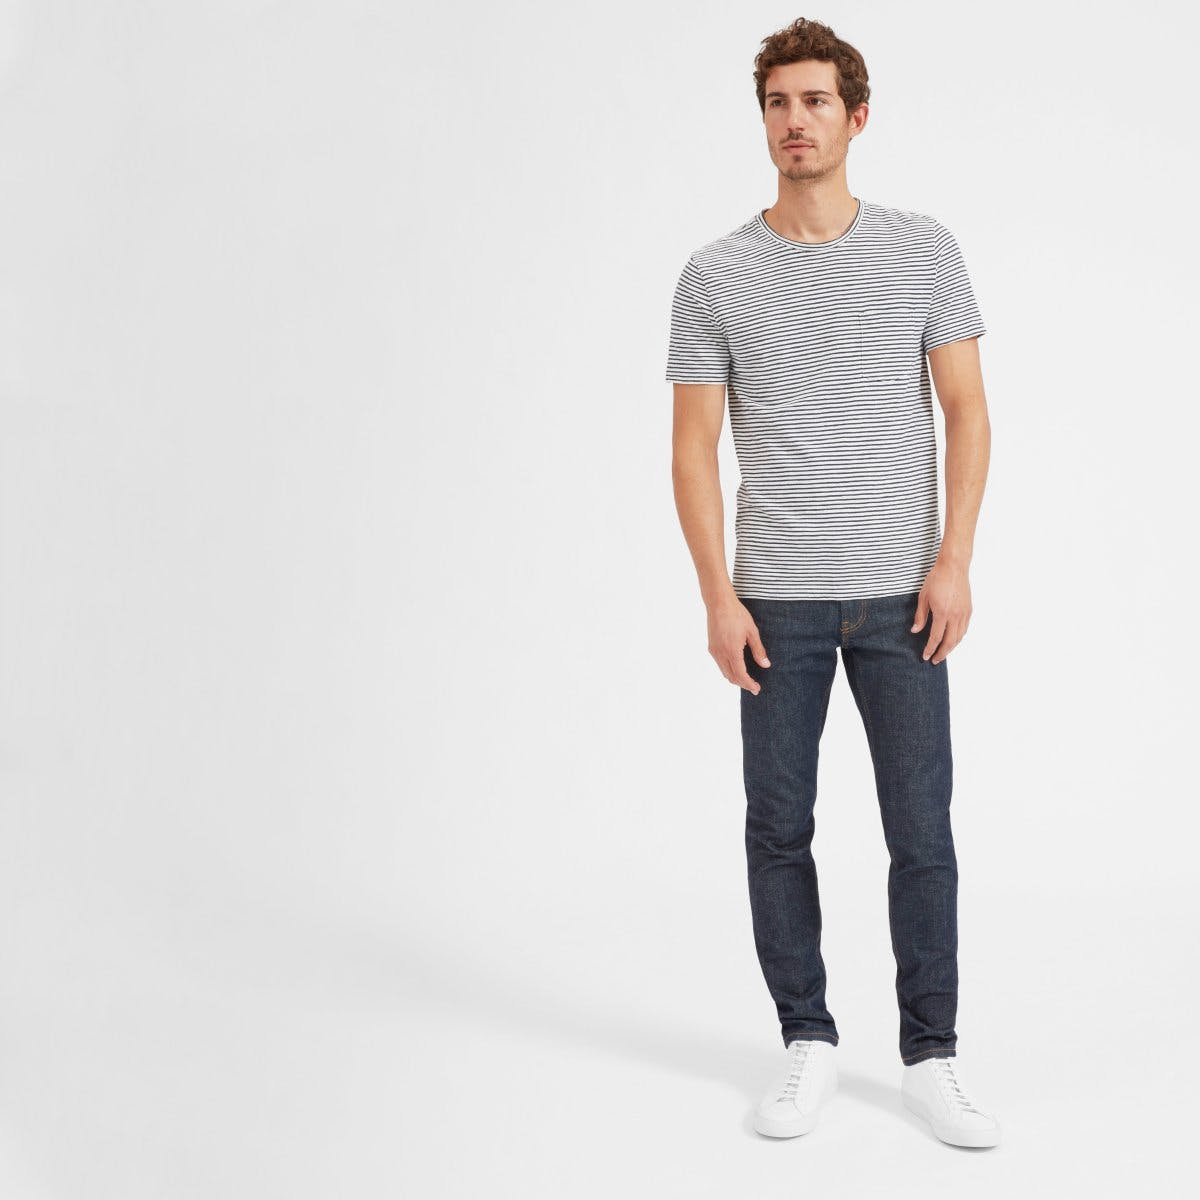 everlane, everlane jeans, everlane denim, japanese denim, slim jeans, raw jeans, straight jeans, denimblog, denim blog